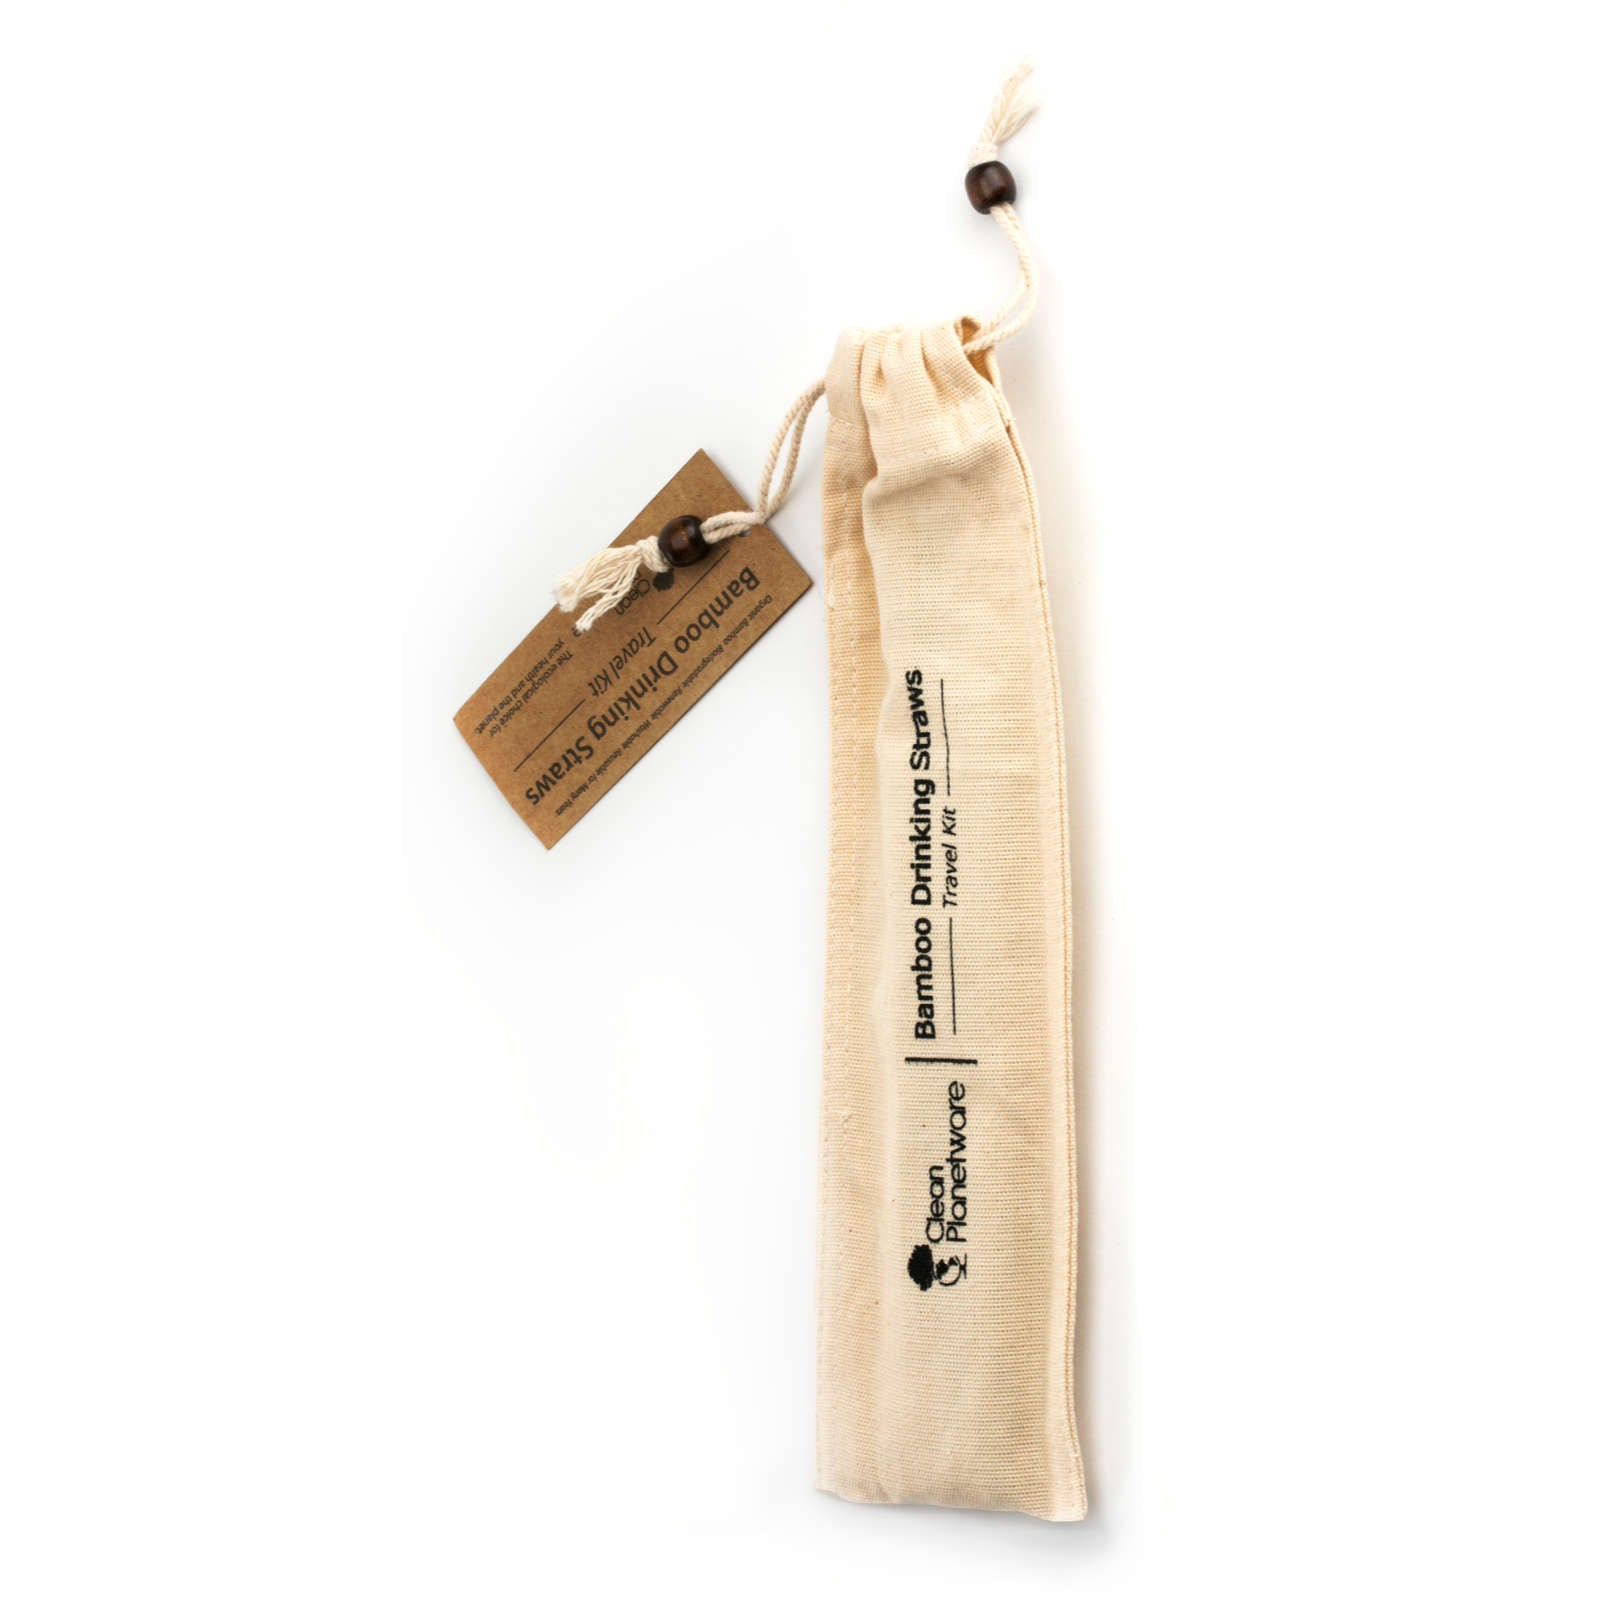 Bamboo Straw Travel Kit - Salix Intimates